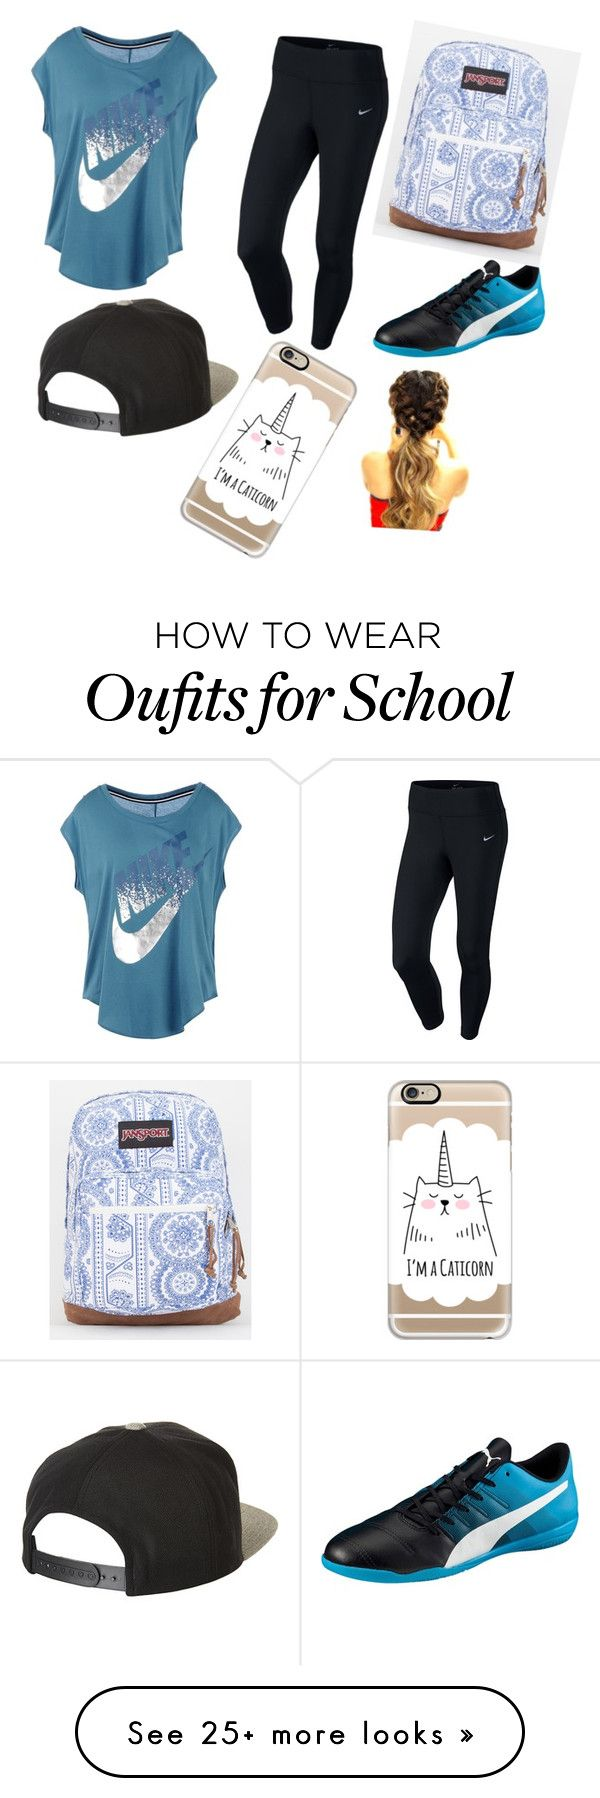 """School outfit"" by vicky1245 on Polyvore featuring NIKE, Puma, Brixton, JanSport and Casetify"